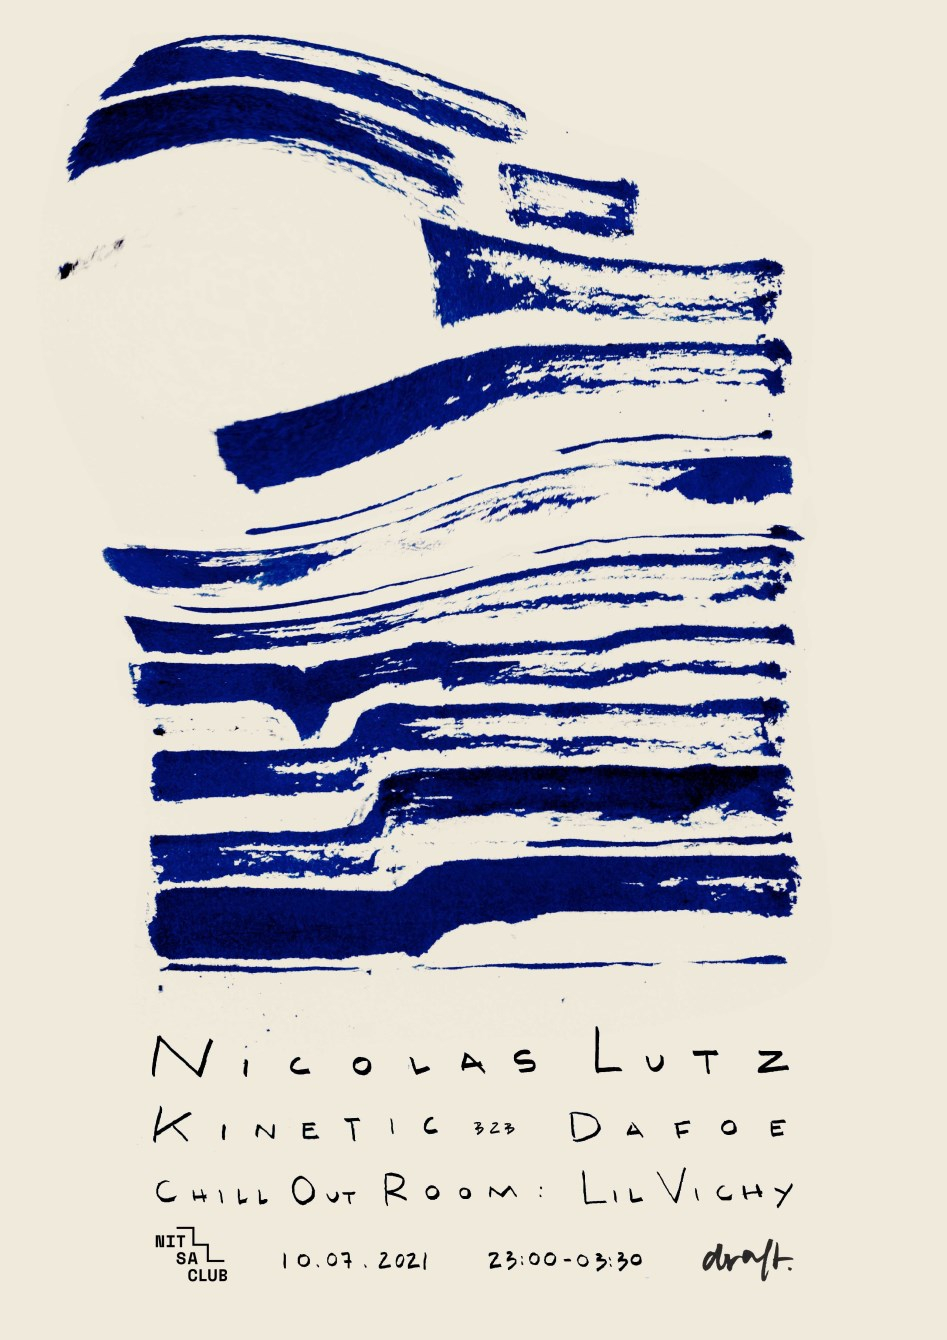 [CANCELLED] Draft: Nicolas Lutz - Flyer front